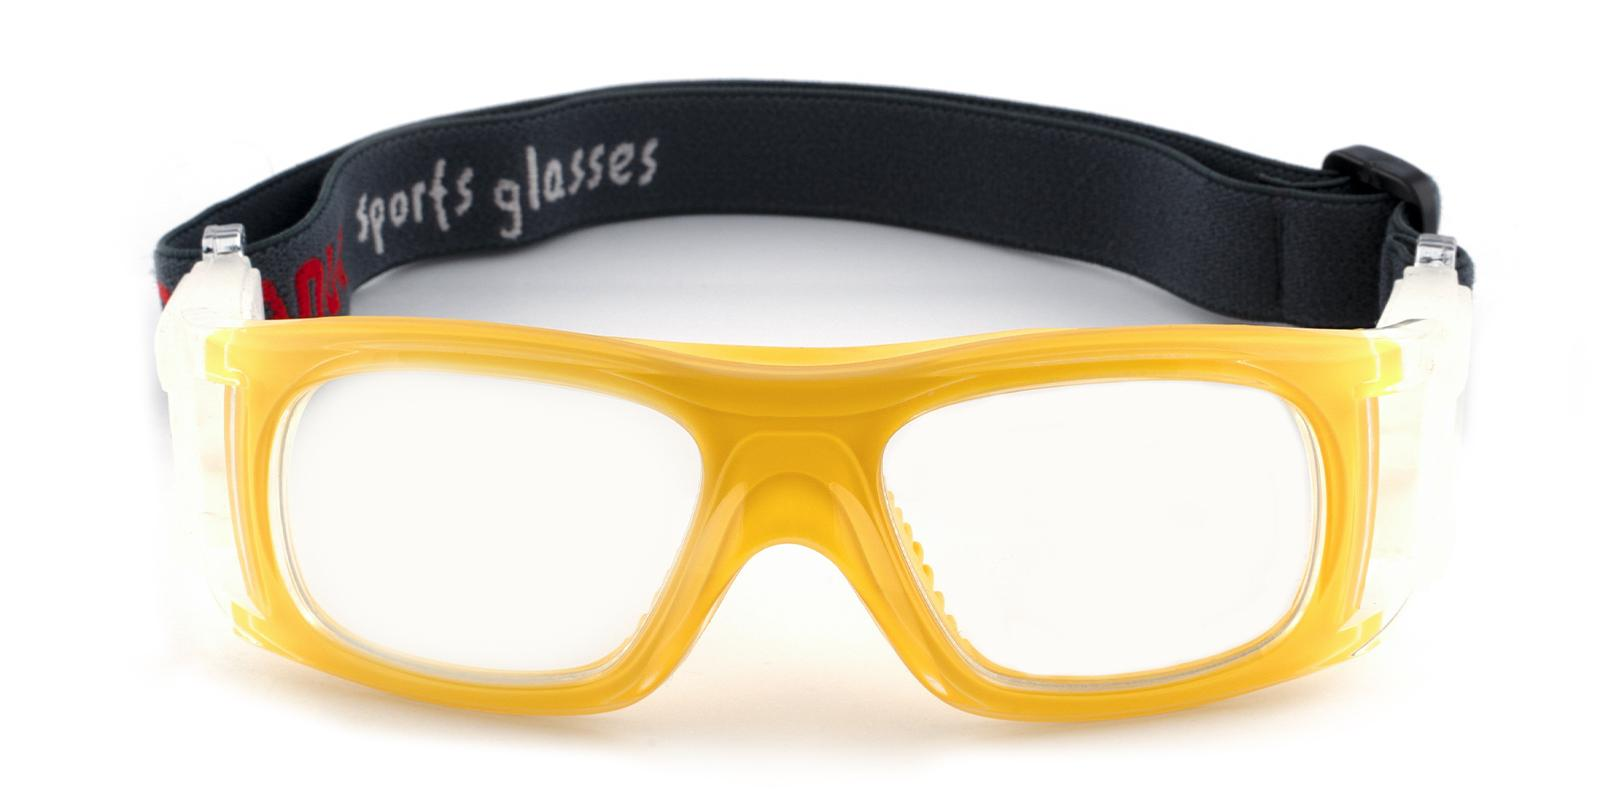 Christopher Yellow Plastic Eyeglasses , SportsGlasses Frames from ABBE Glasses